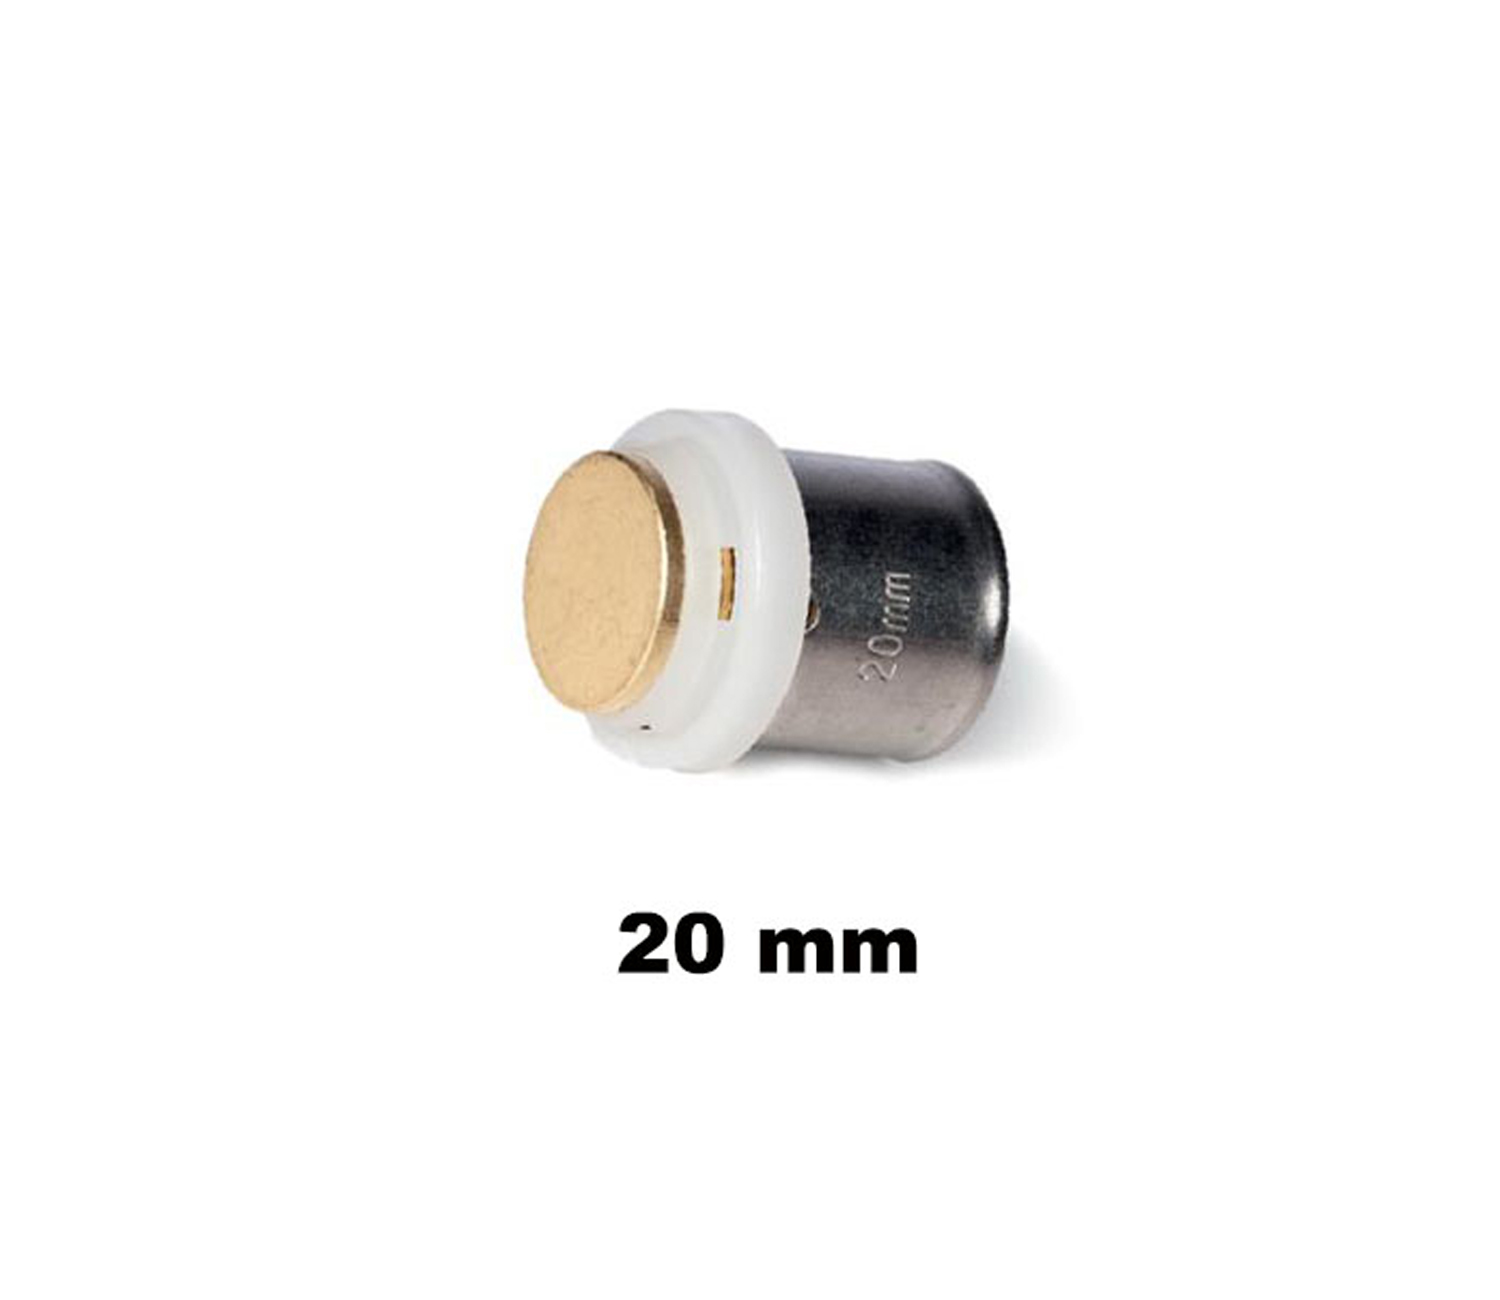 Stop End 20mm (51002)